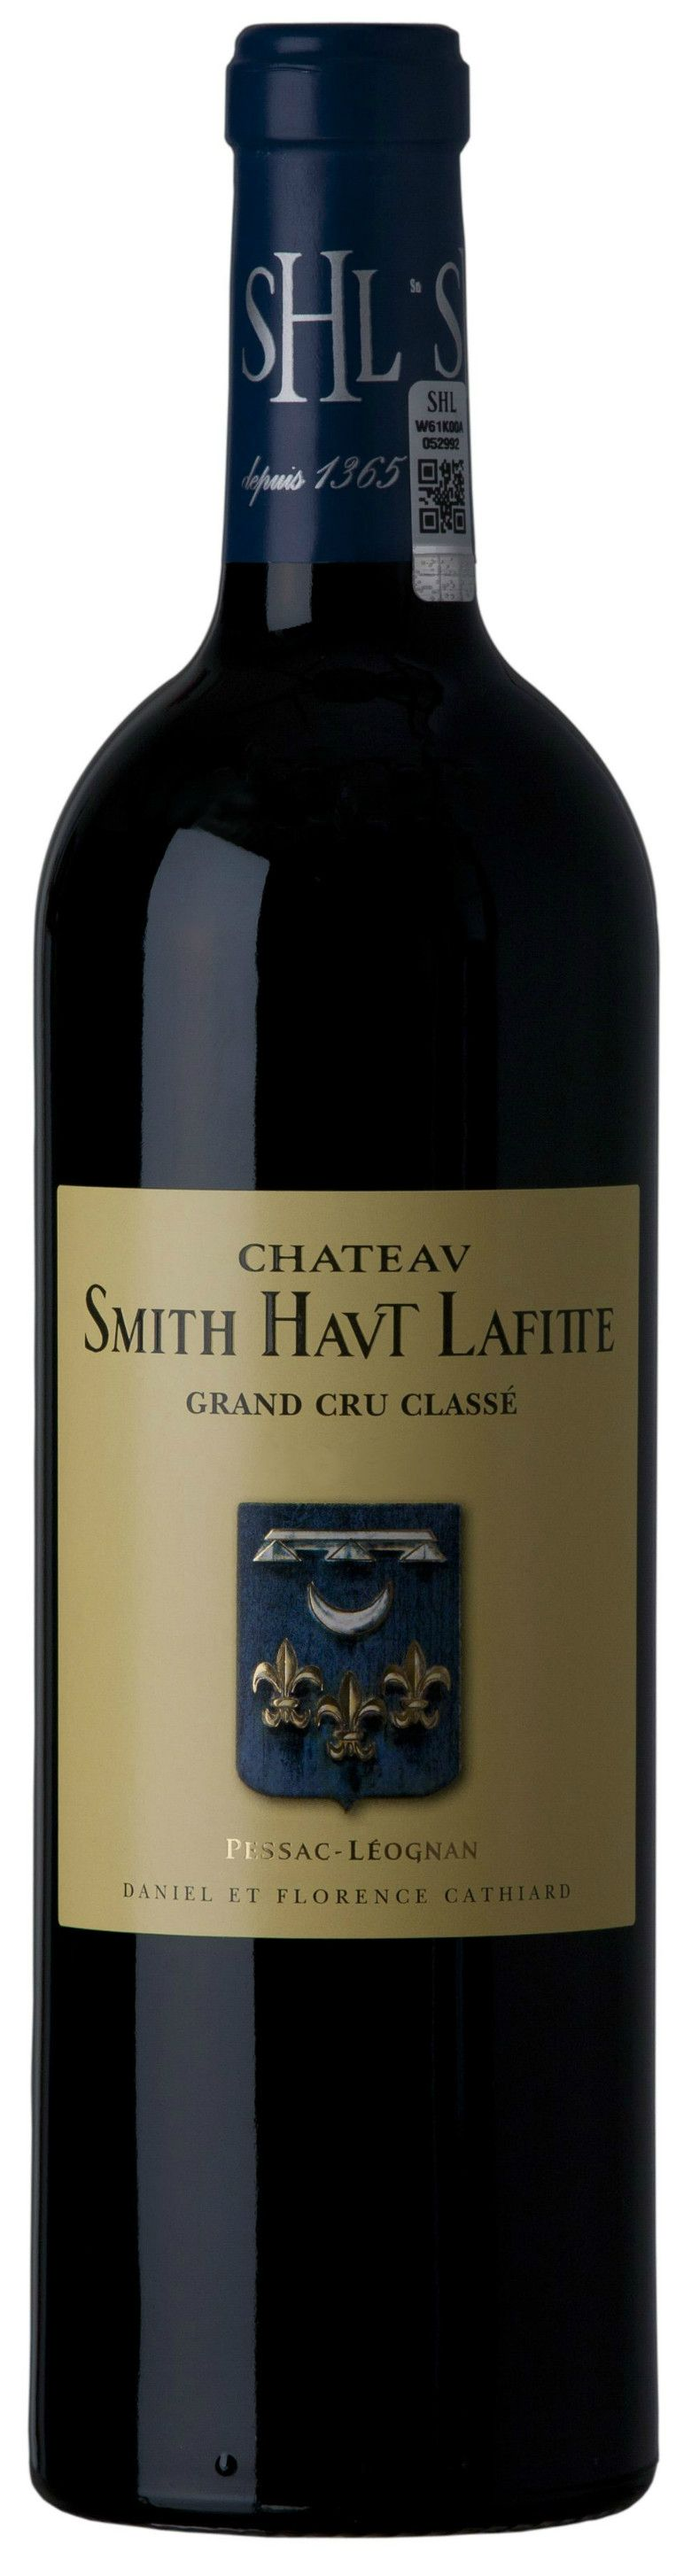 Chateau Smith Haut Lafitte, 2009